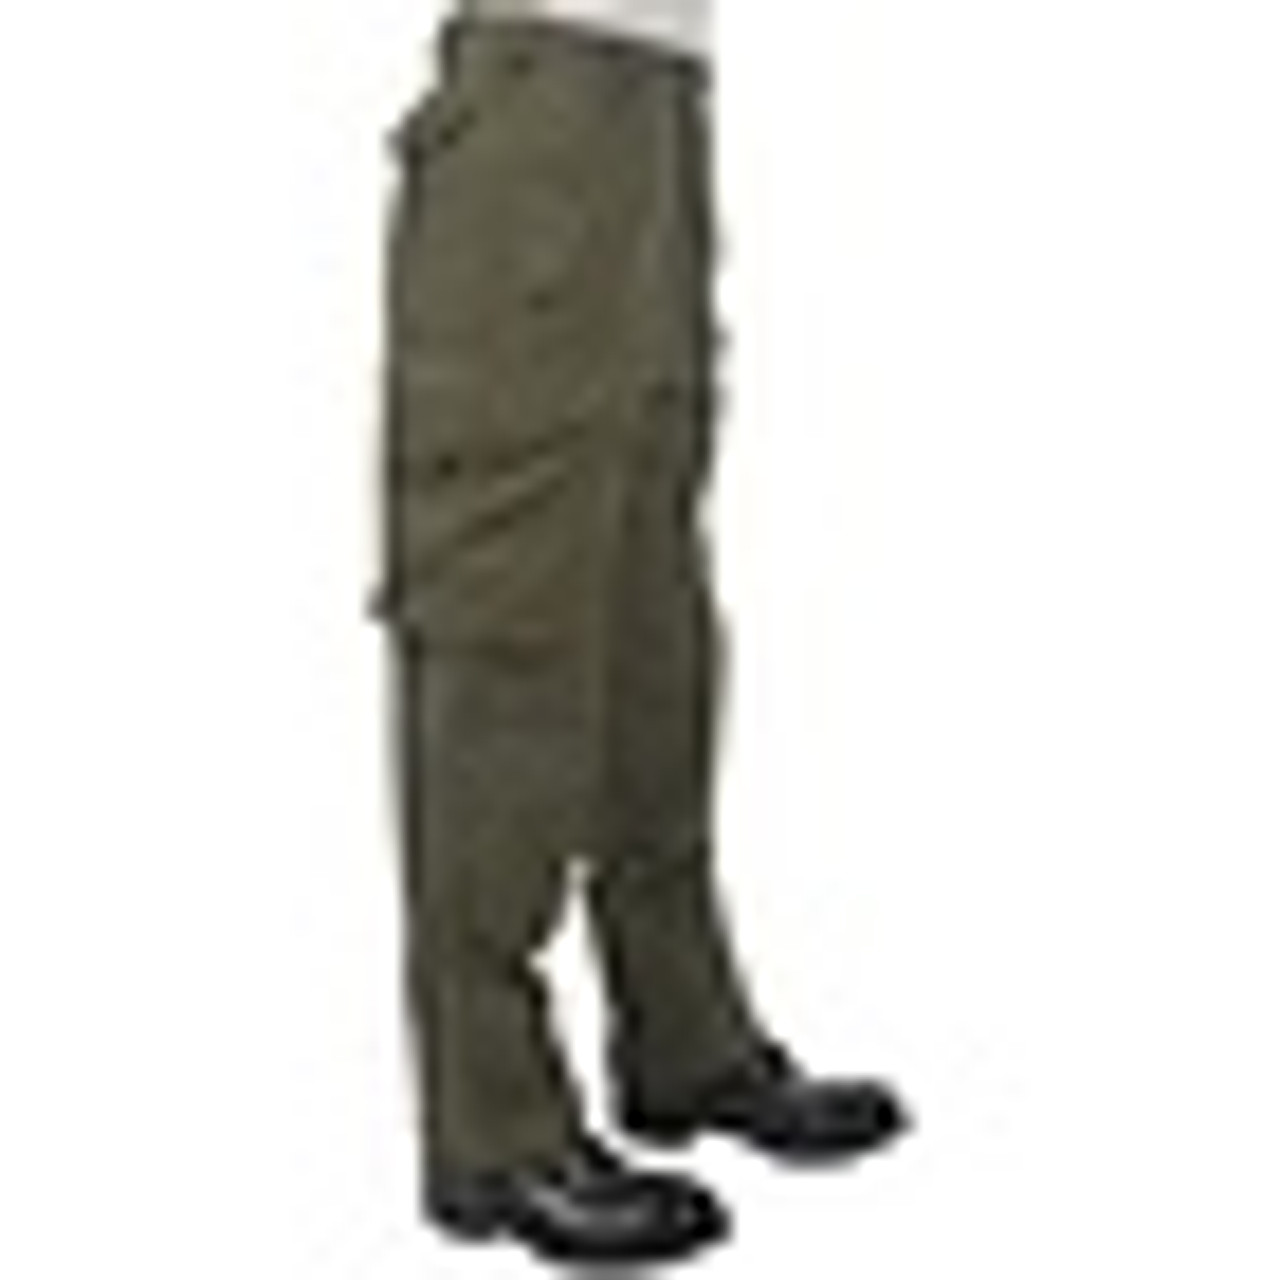 Mil-Spex Canadian Army Combat Pants (New)